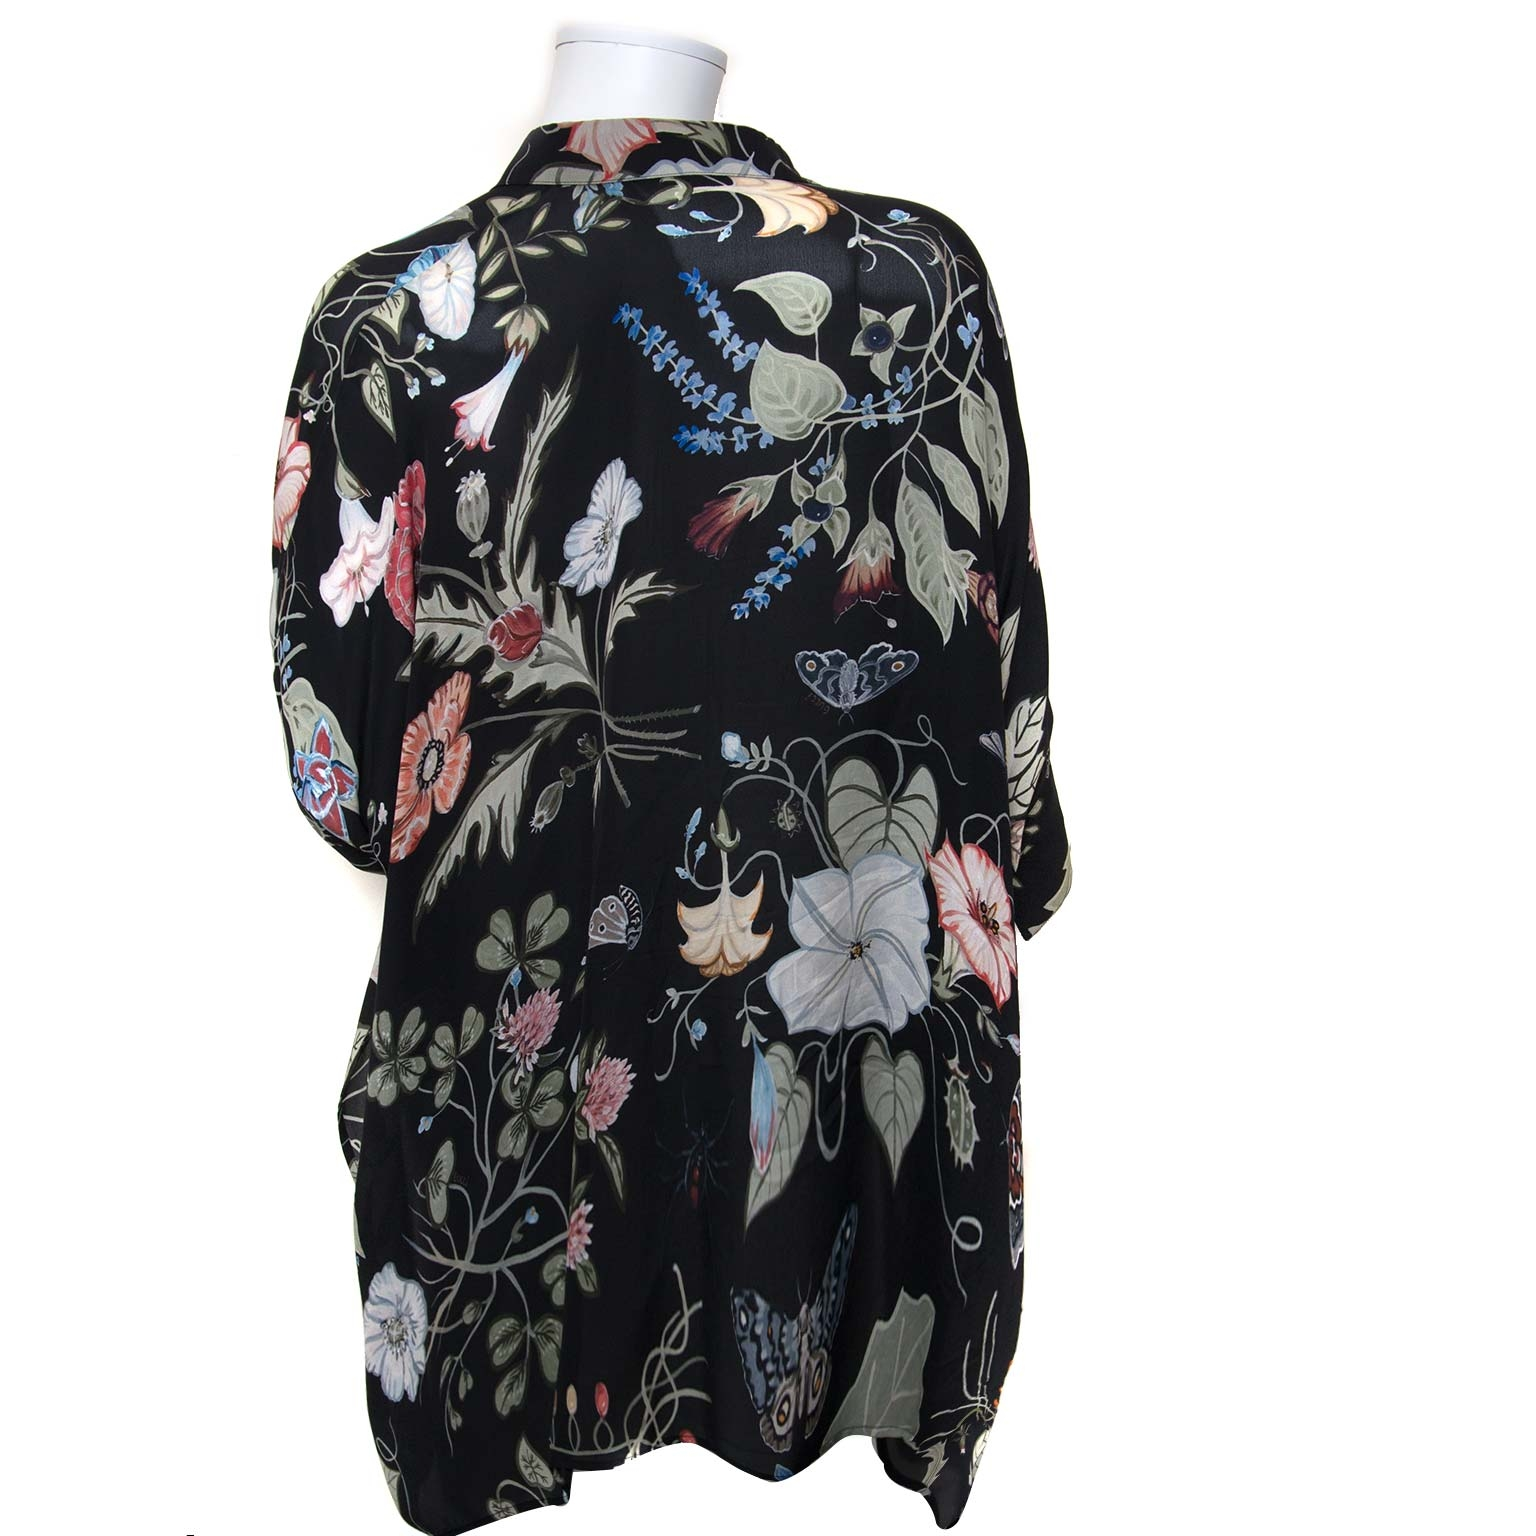 b04b0a8a2bb ... gucci silk flower blouse now for sale at labellov vintage fashion  webshop belgium